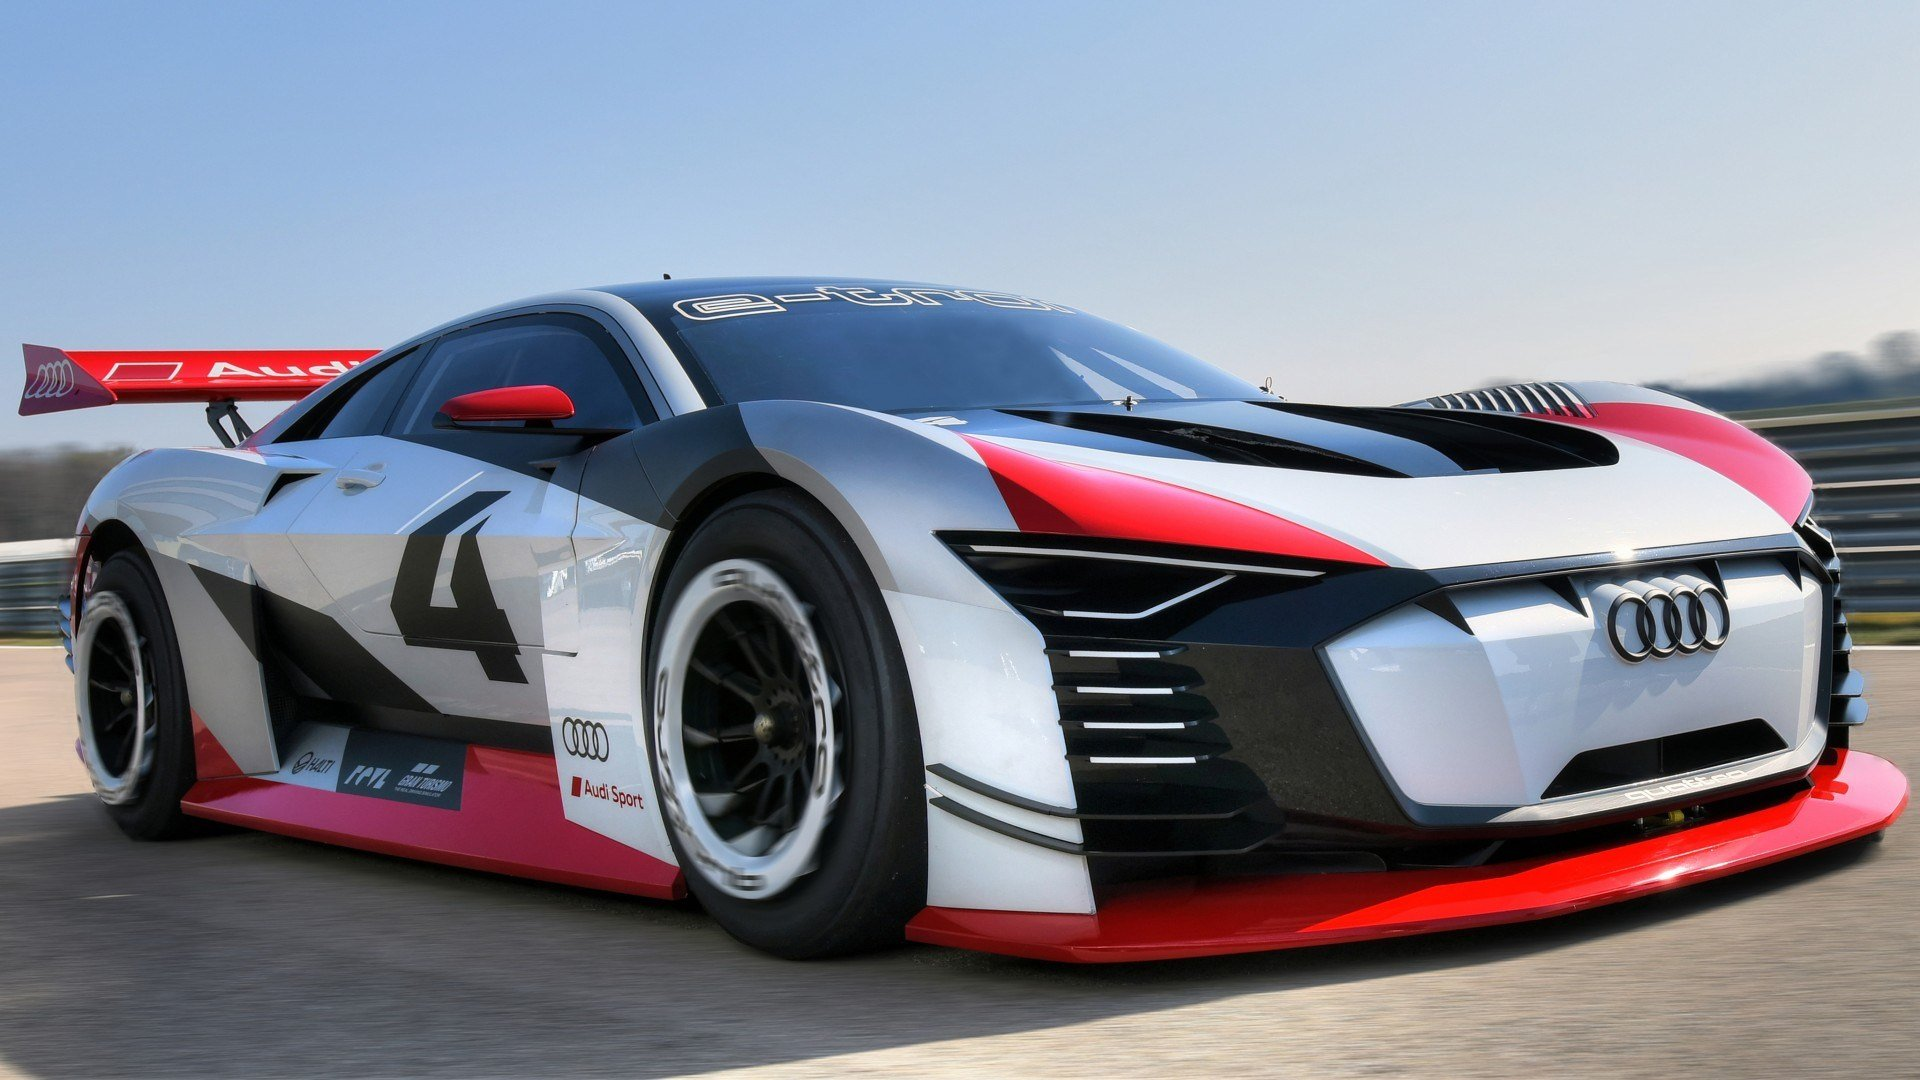 Latest 2018 Audi E Tron Vision Gran Turismo 4K Wallpaper Hd Car Free Download